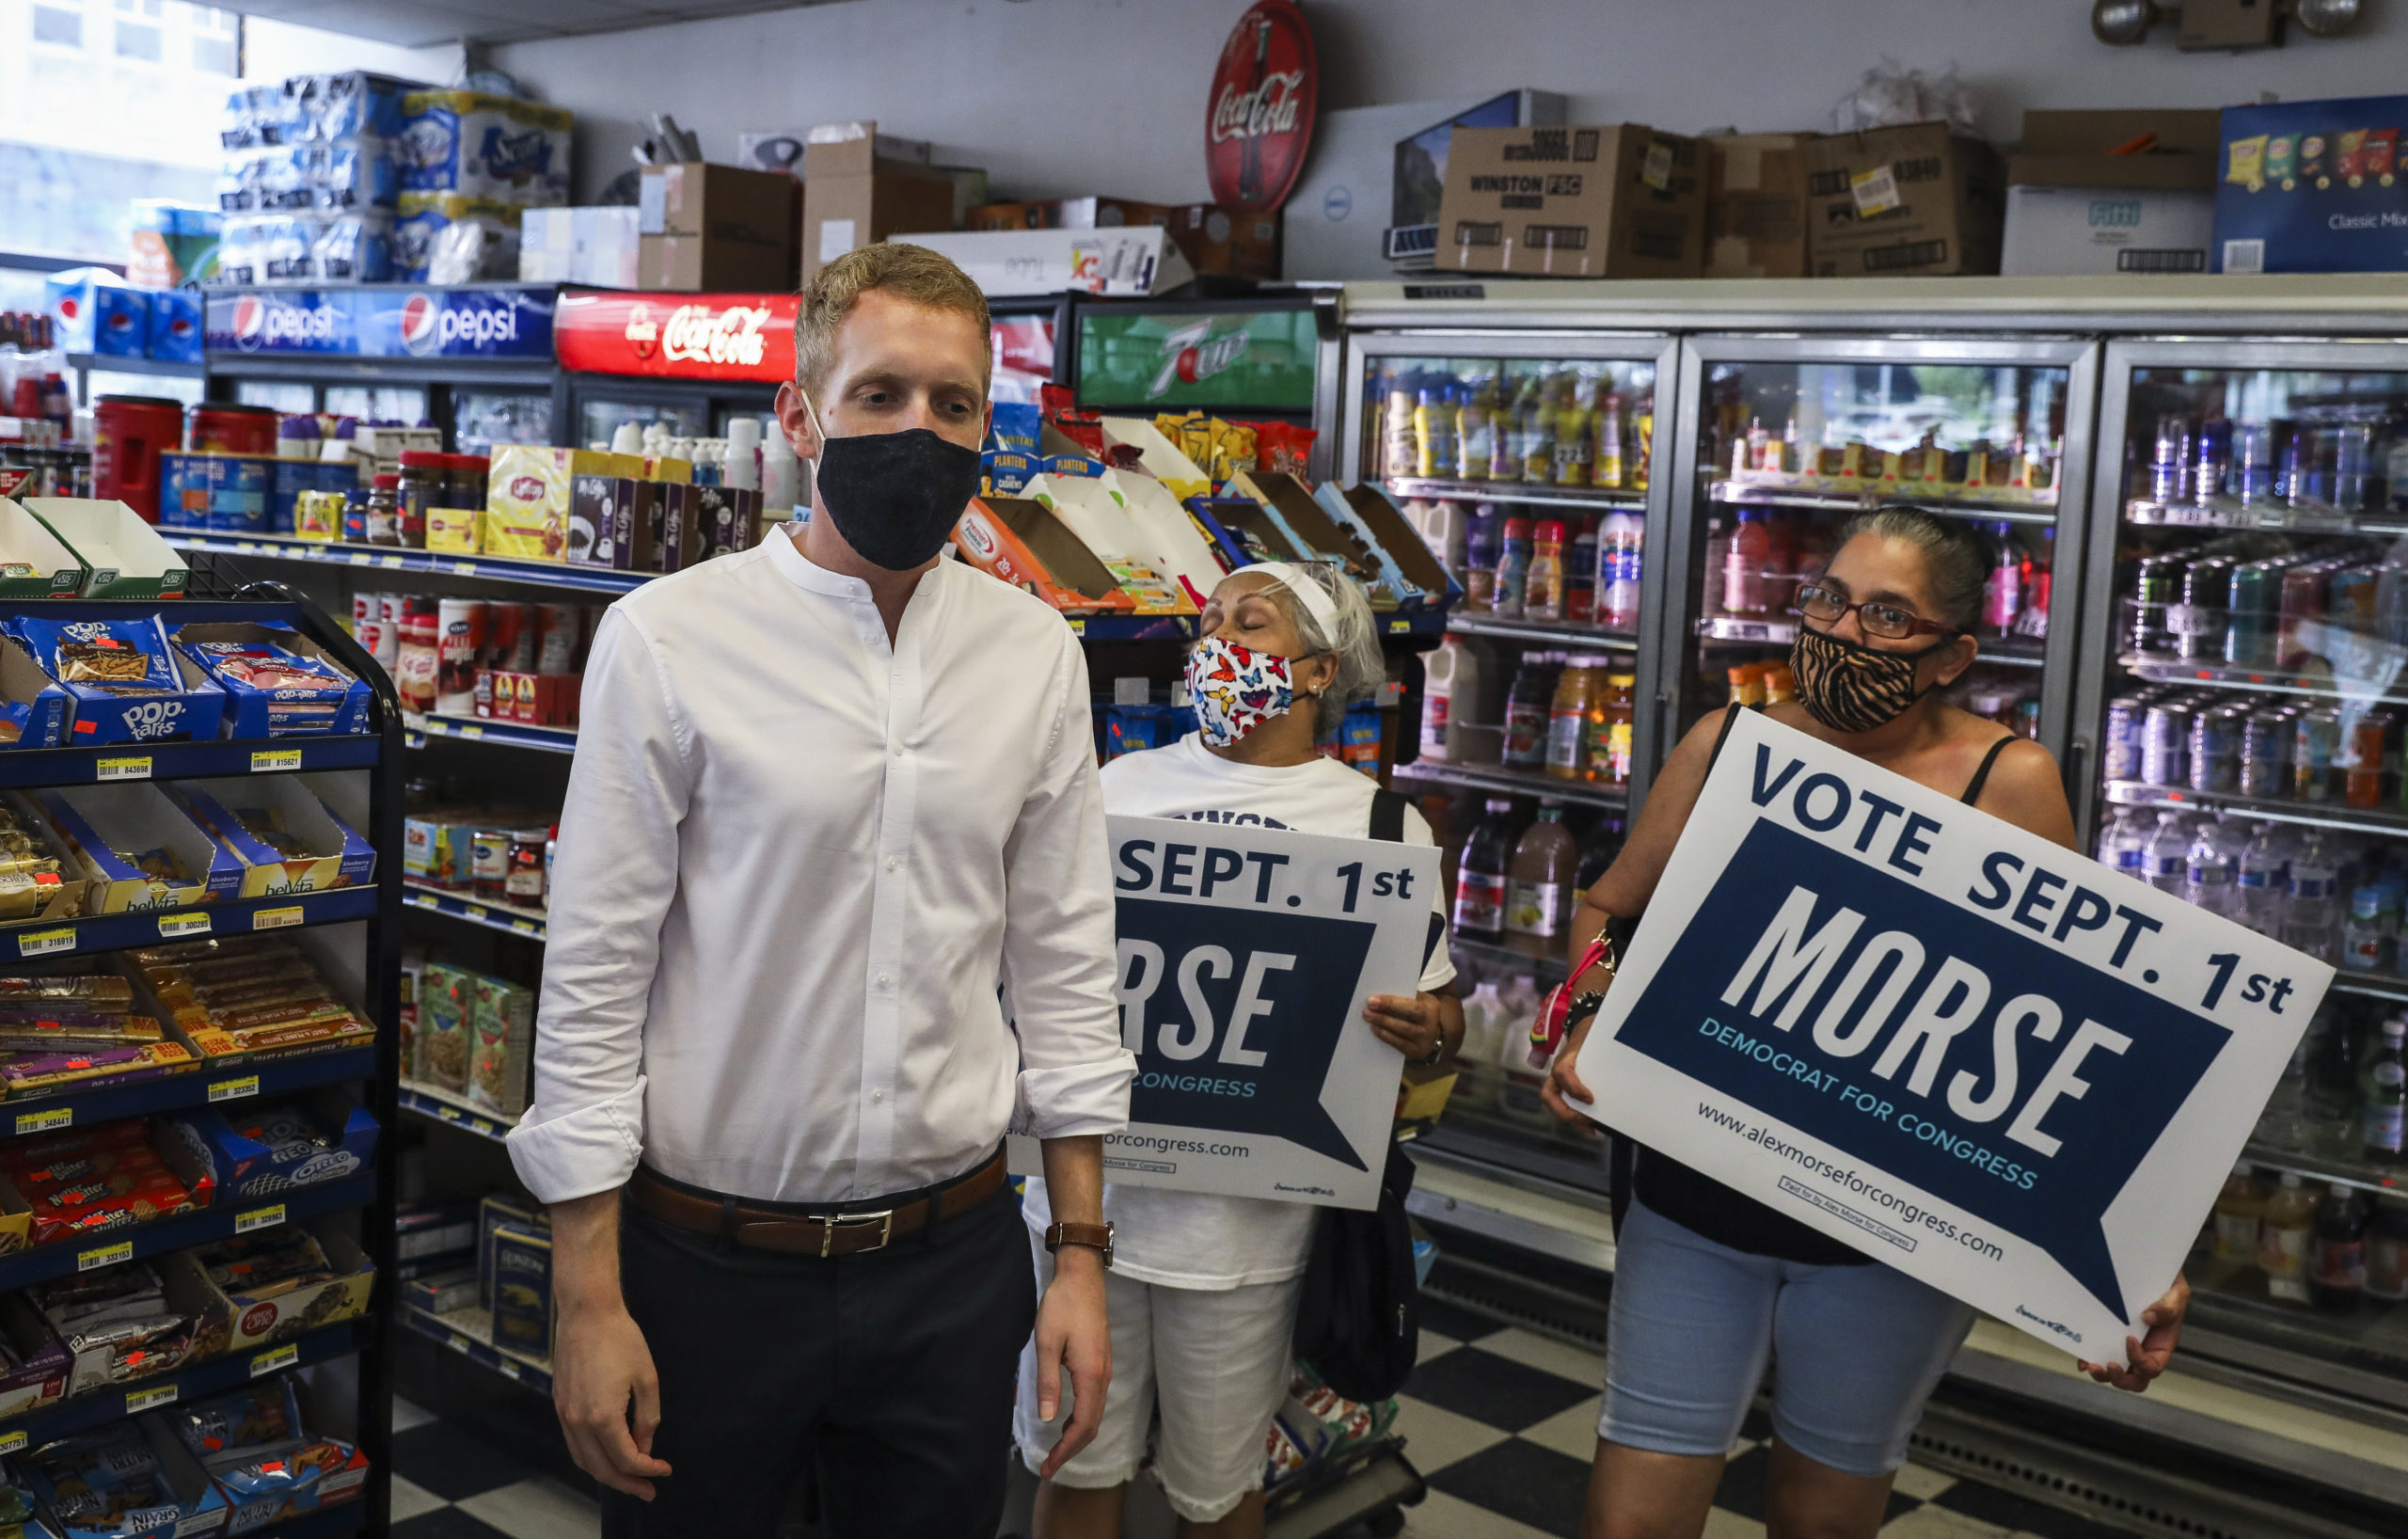 Mayor Alex Morse of Holyoke campaigns ahead of the September 1 primaries,